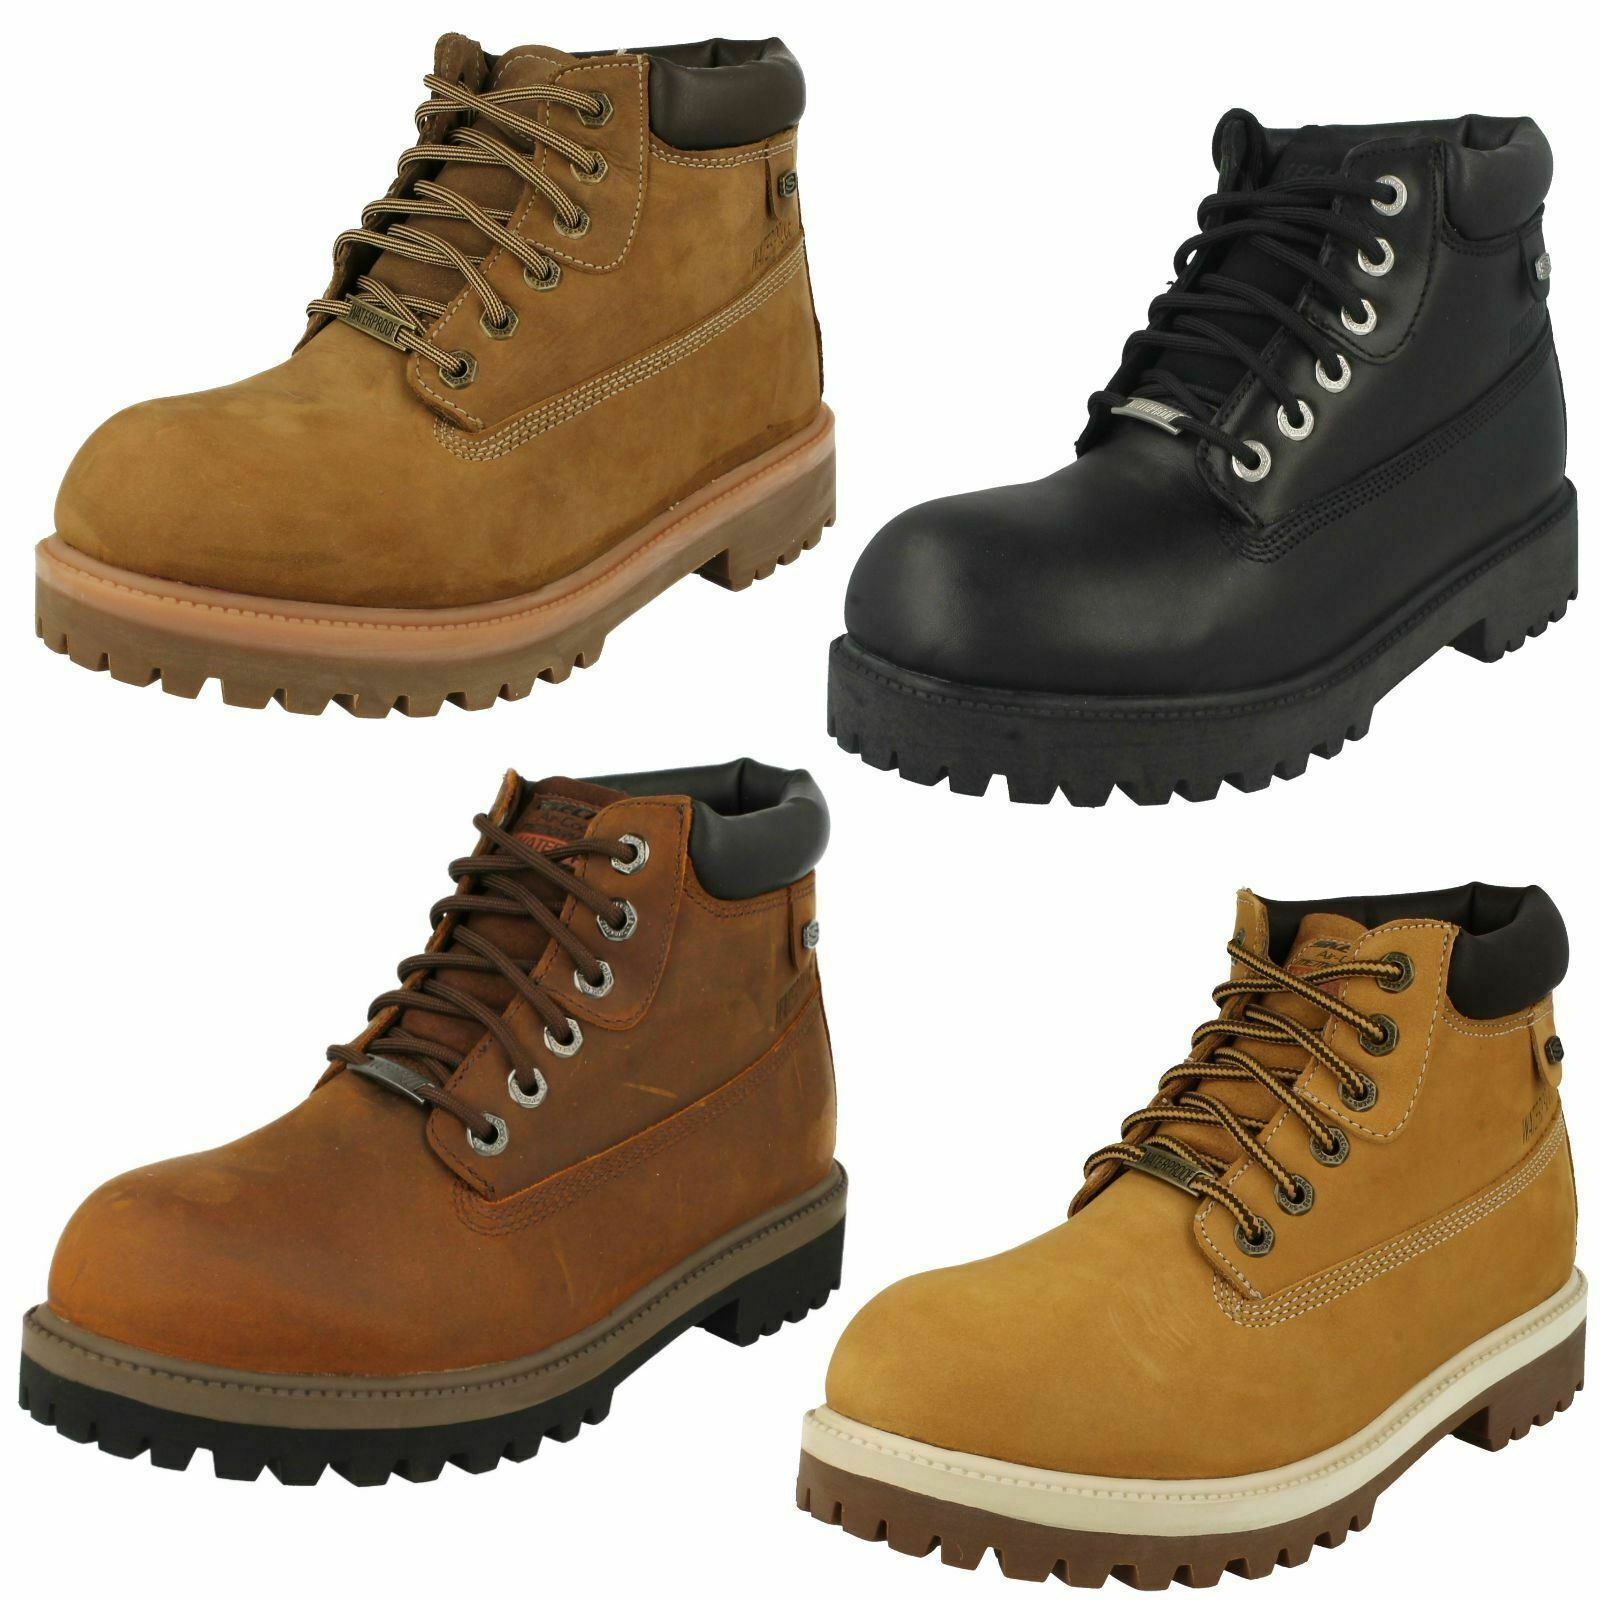 Mens VERDICT   4442 Waterproof Lace Up Leather Ankle Boot By Skechers